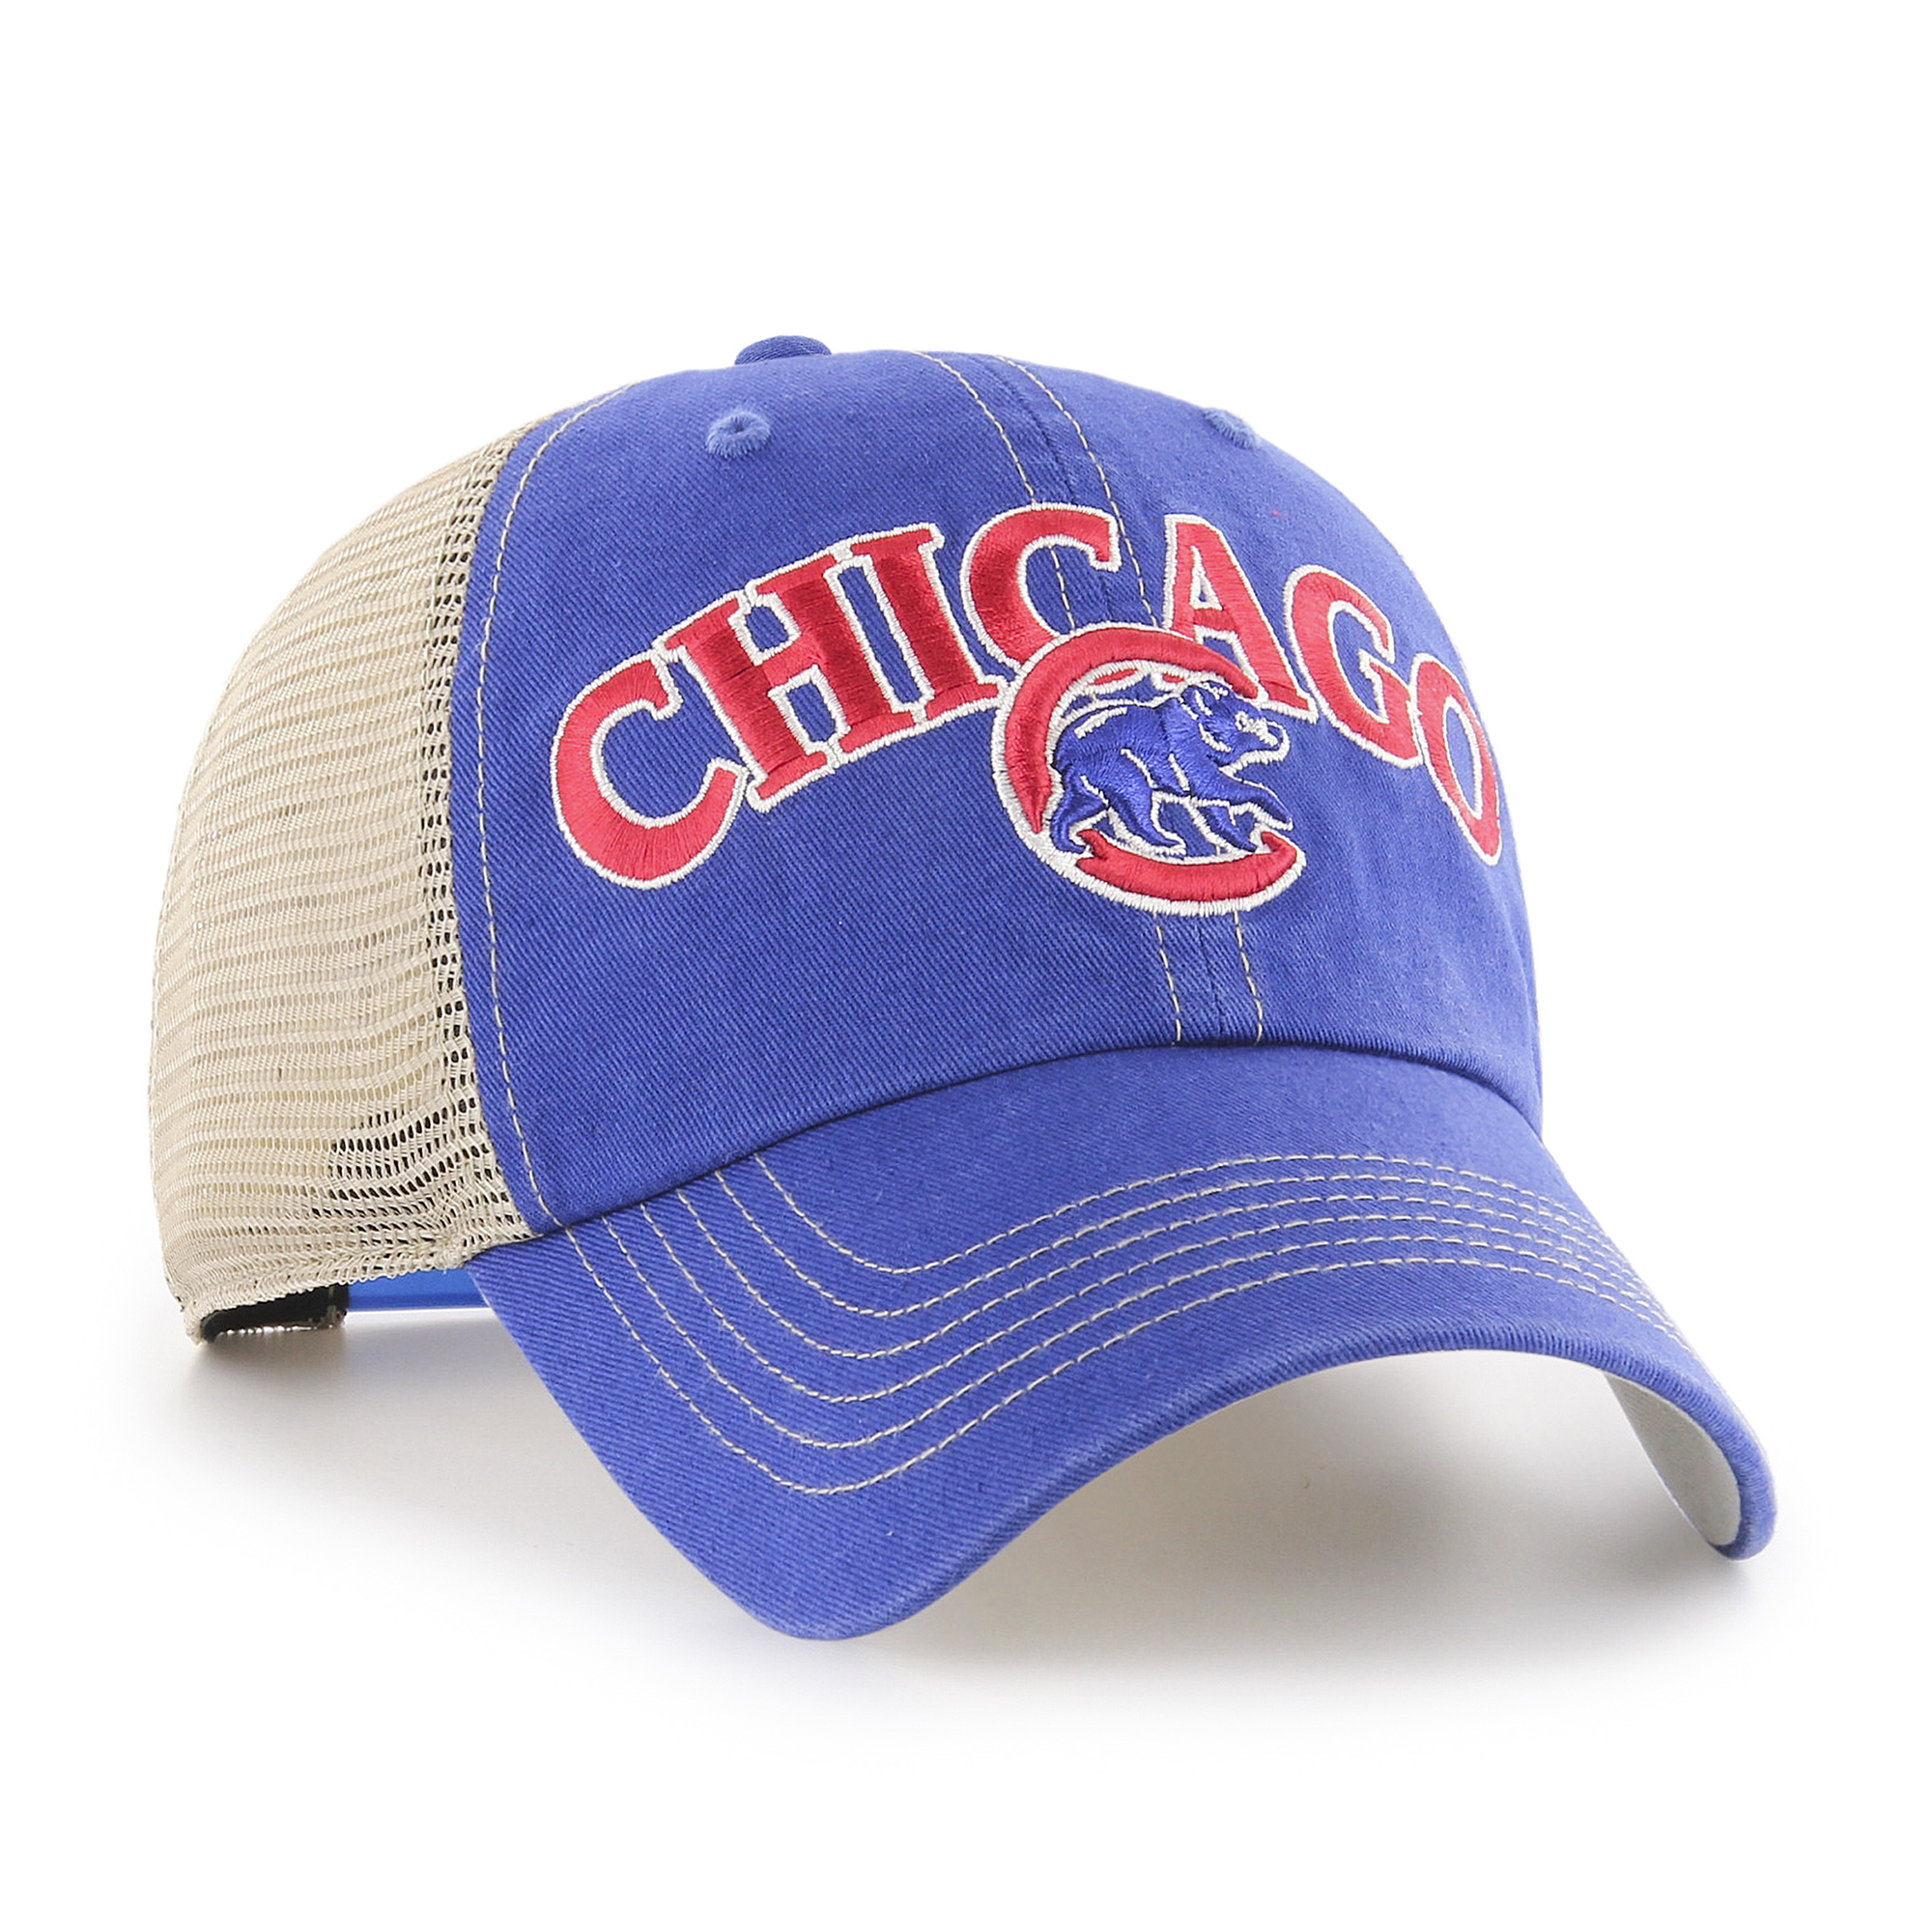 MLB Chicago Cubs Aliquippa Adjustable Cap/Hat by Fan Favorite